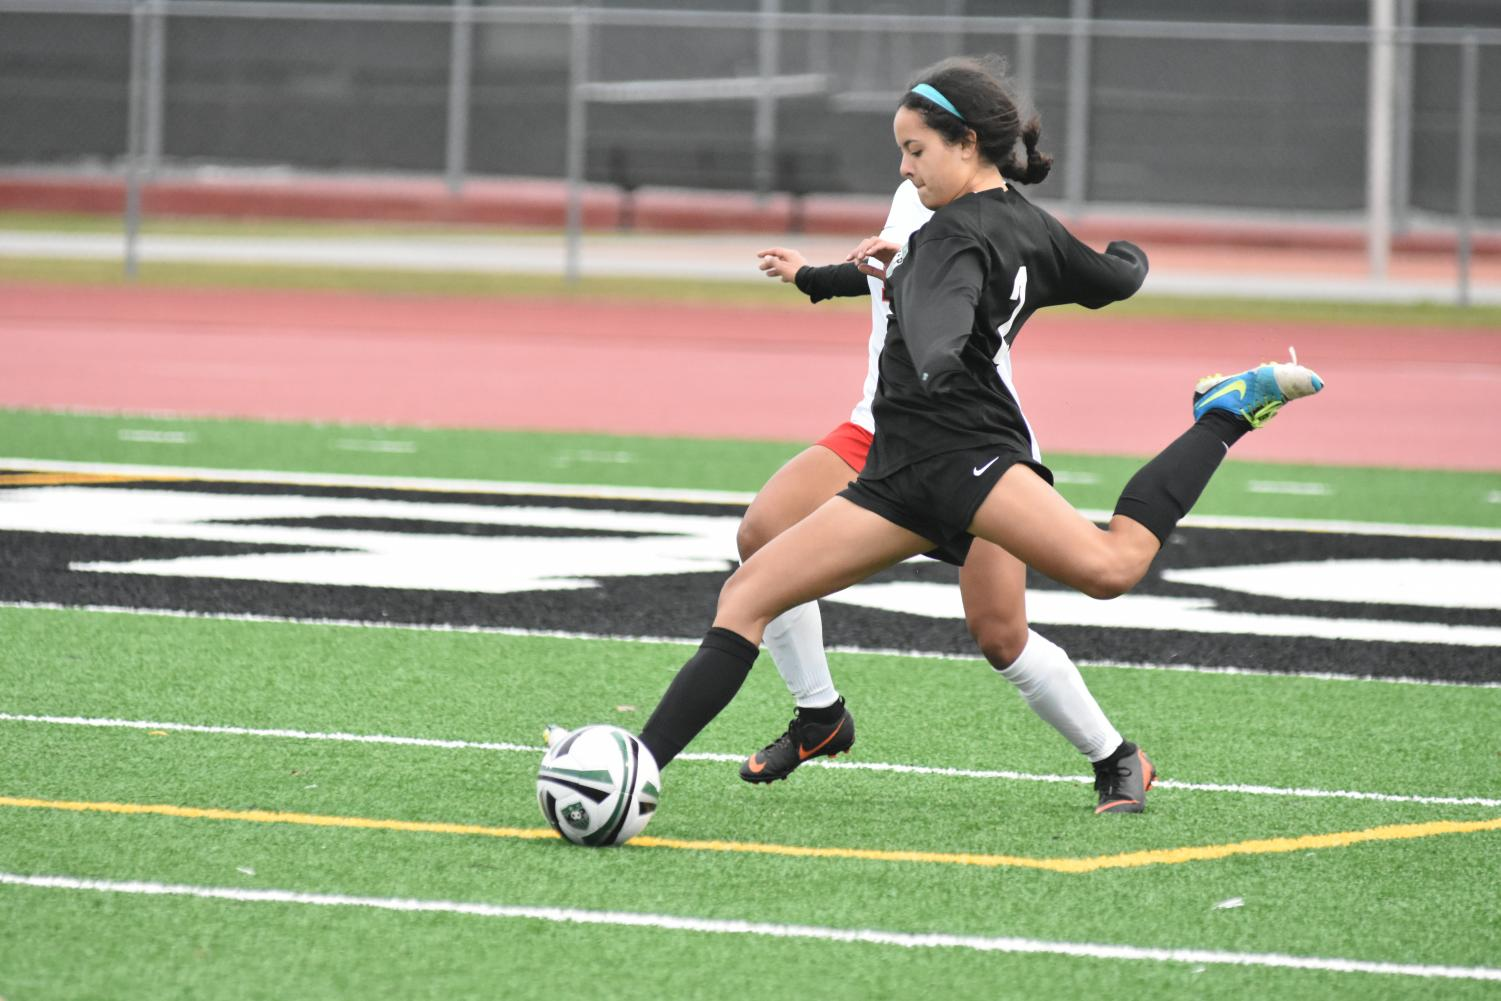 Senior Bella Salazar crosses the ball during an early season game at Kingwood Park.